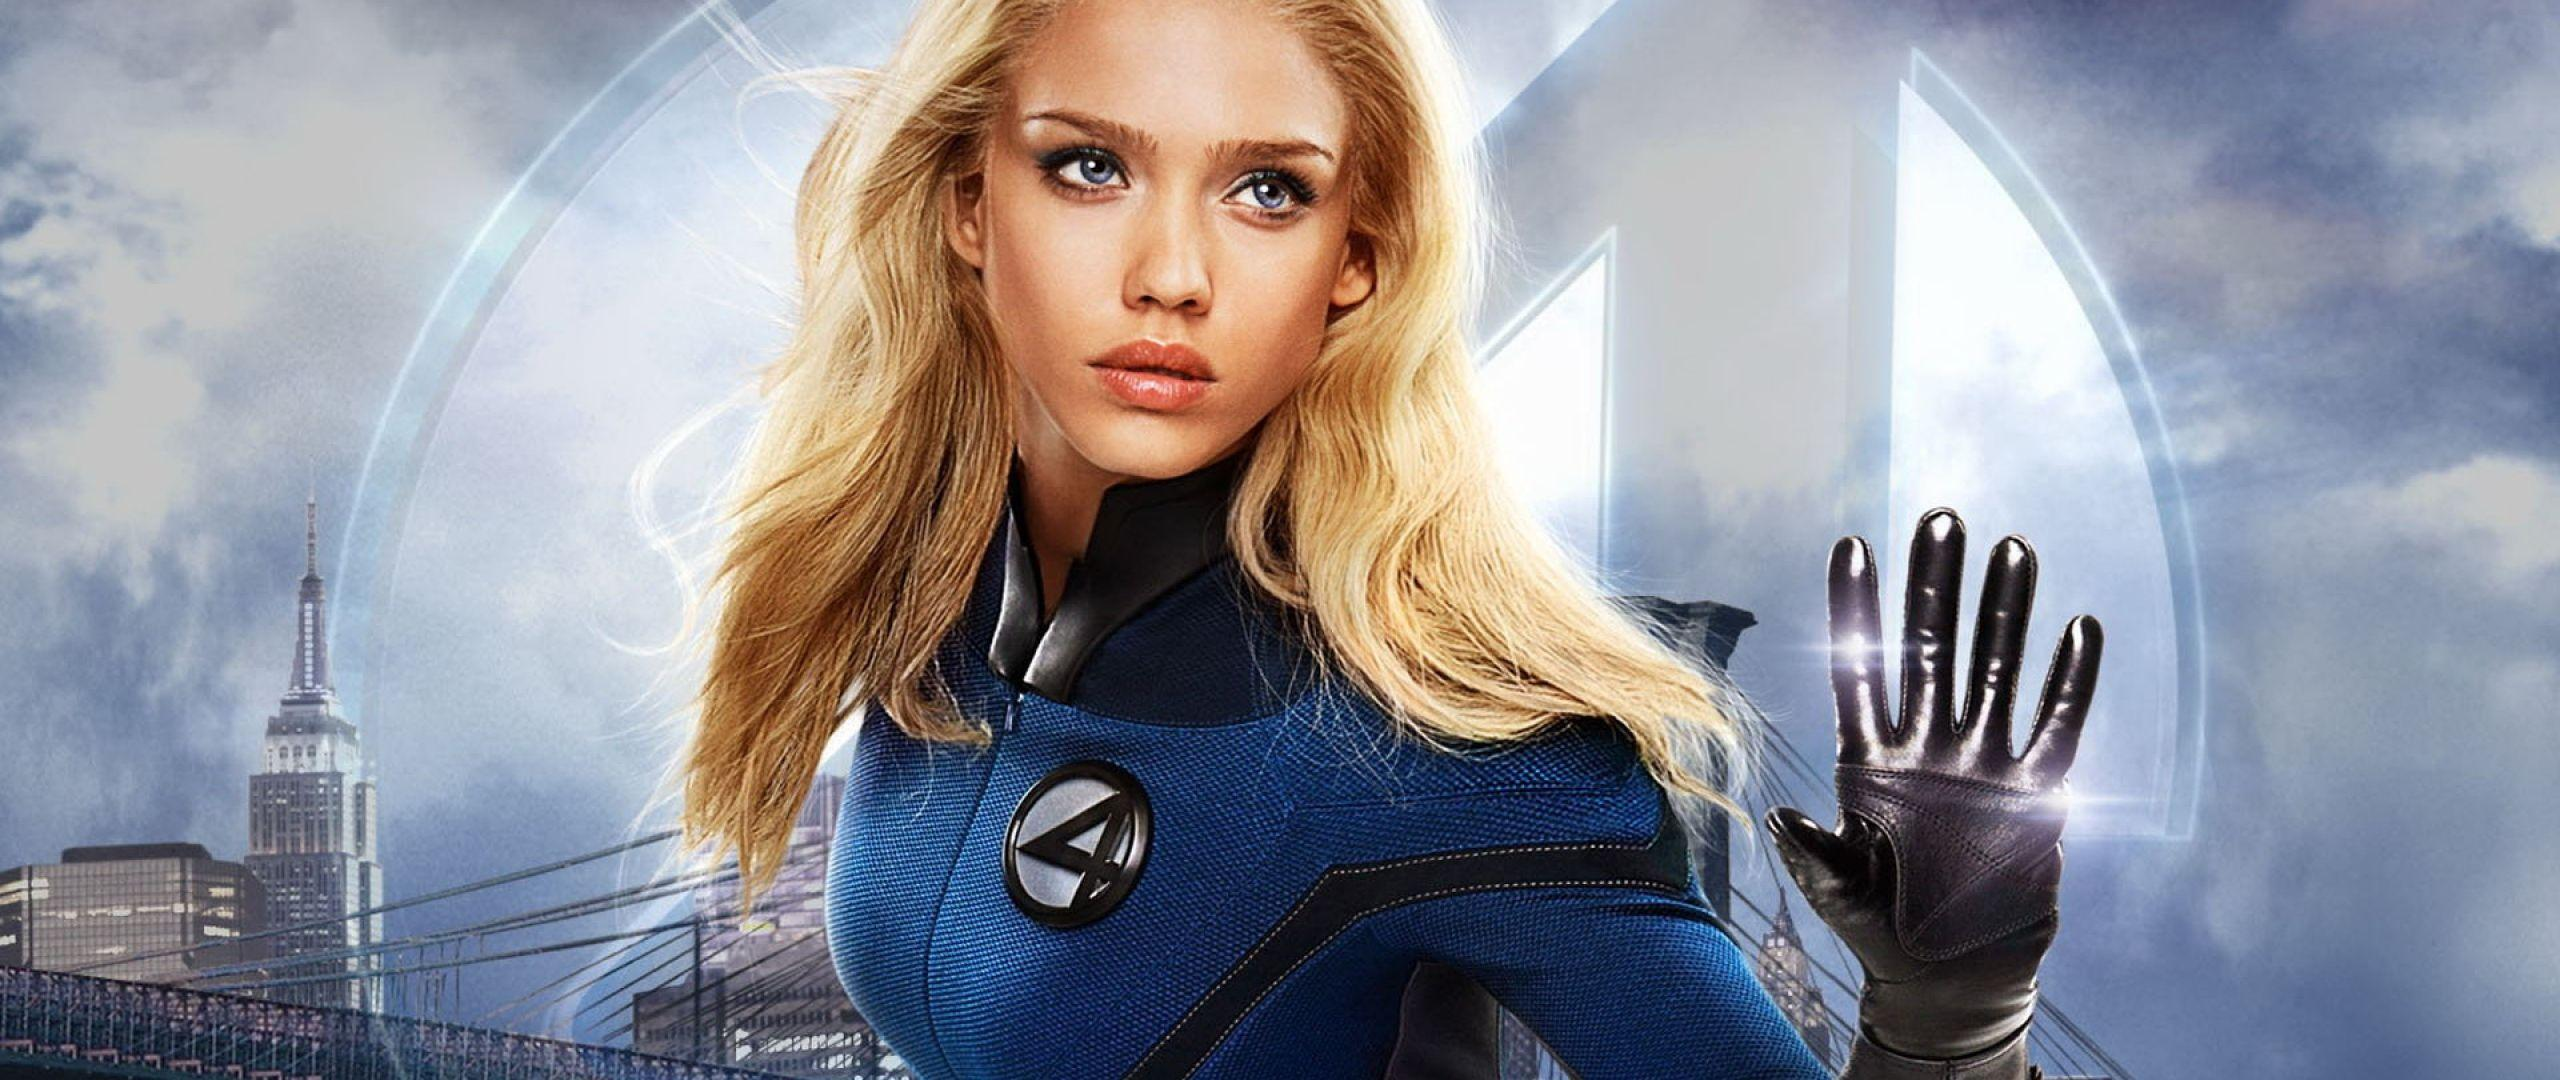 Invisible Woman comic book characters